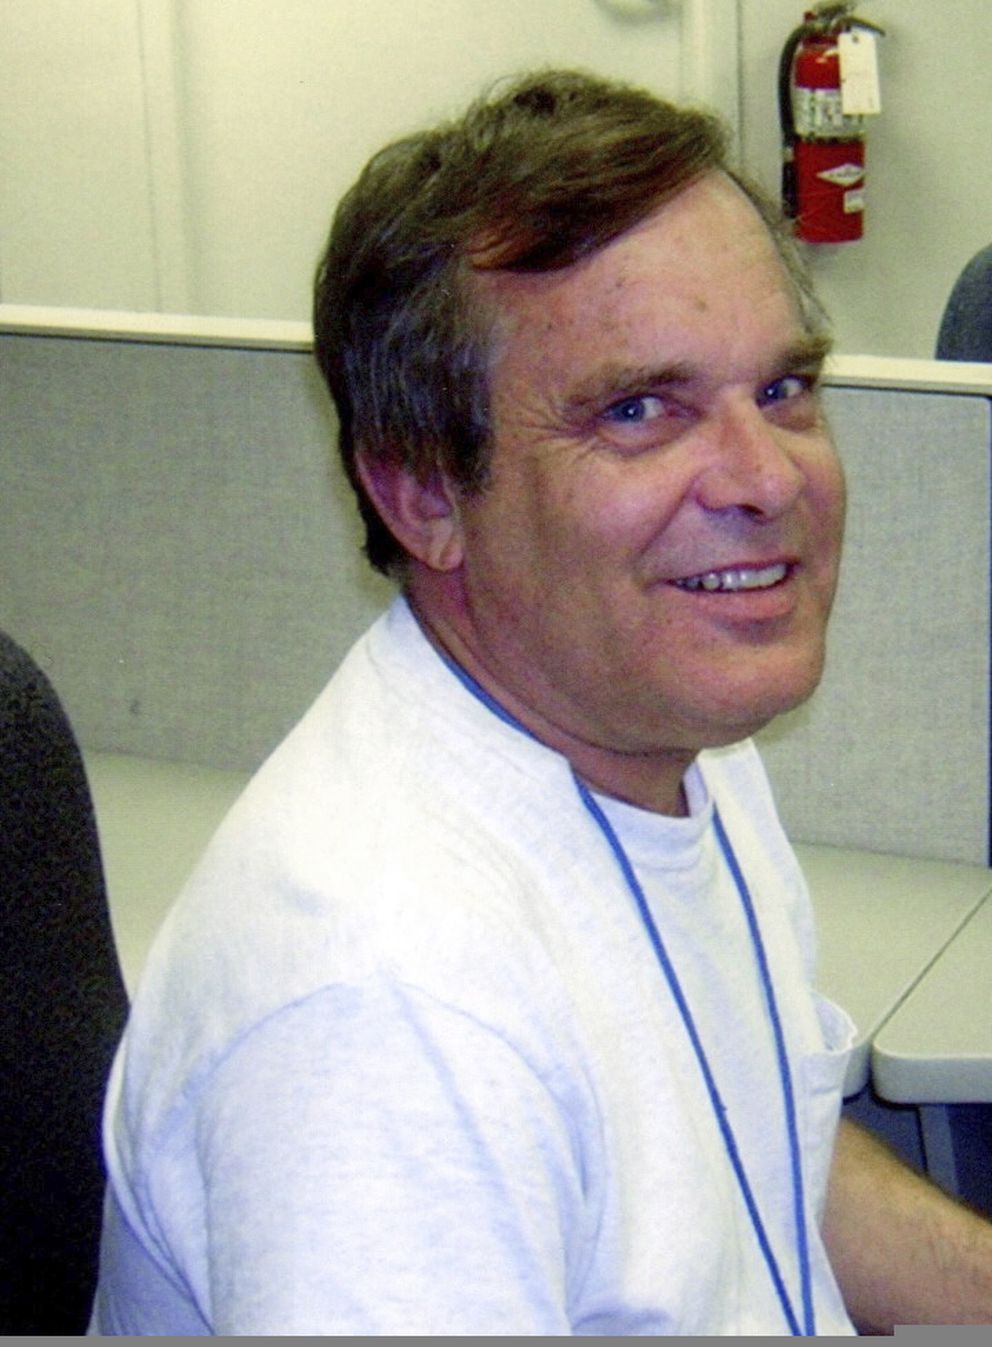 In this 2013 photo provided by Susan E. Madsen, Alan Naiman poses for a photo at his work at Children's Administration Child Protective Services, in Seattle. (Susan E. Madsen via AP)